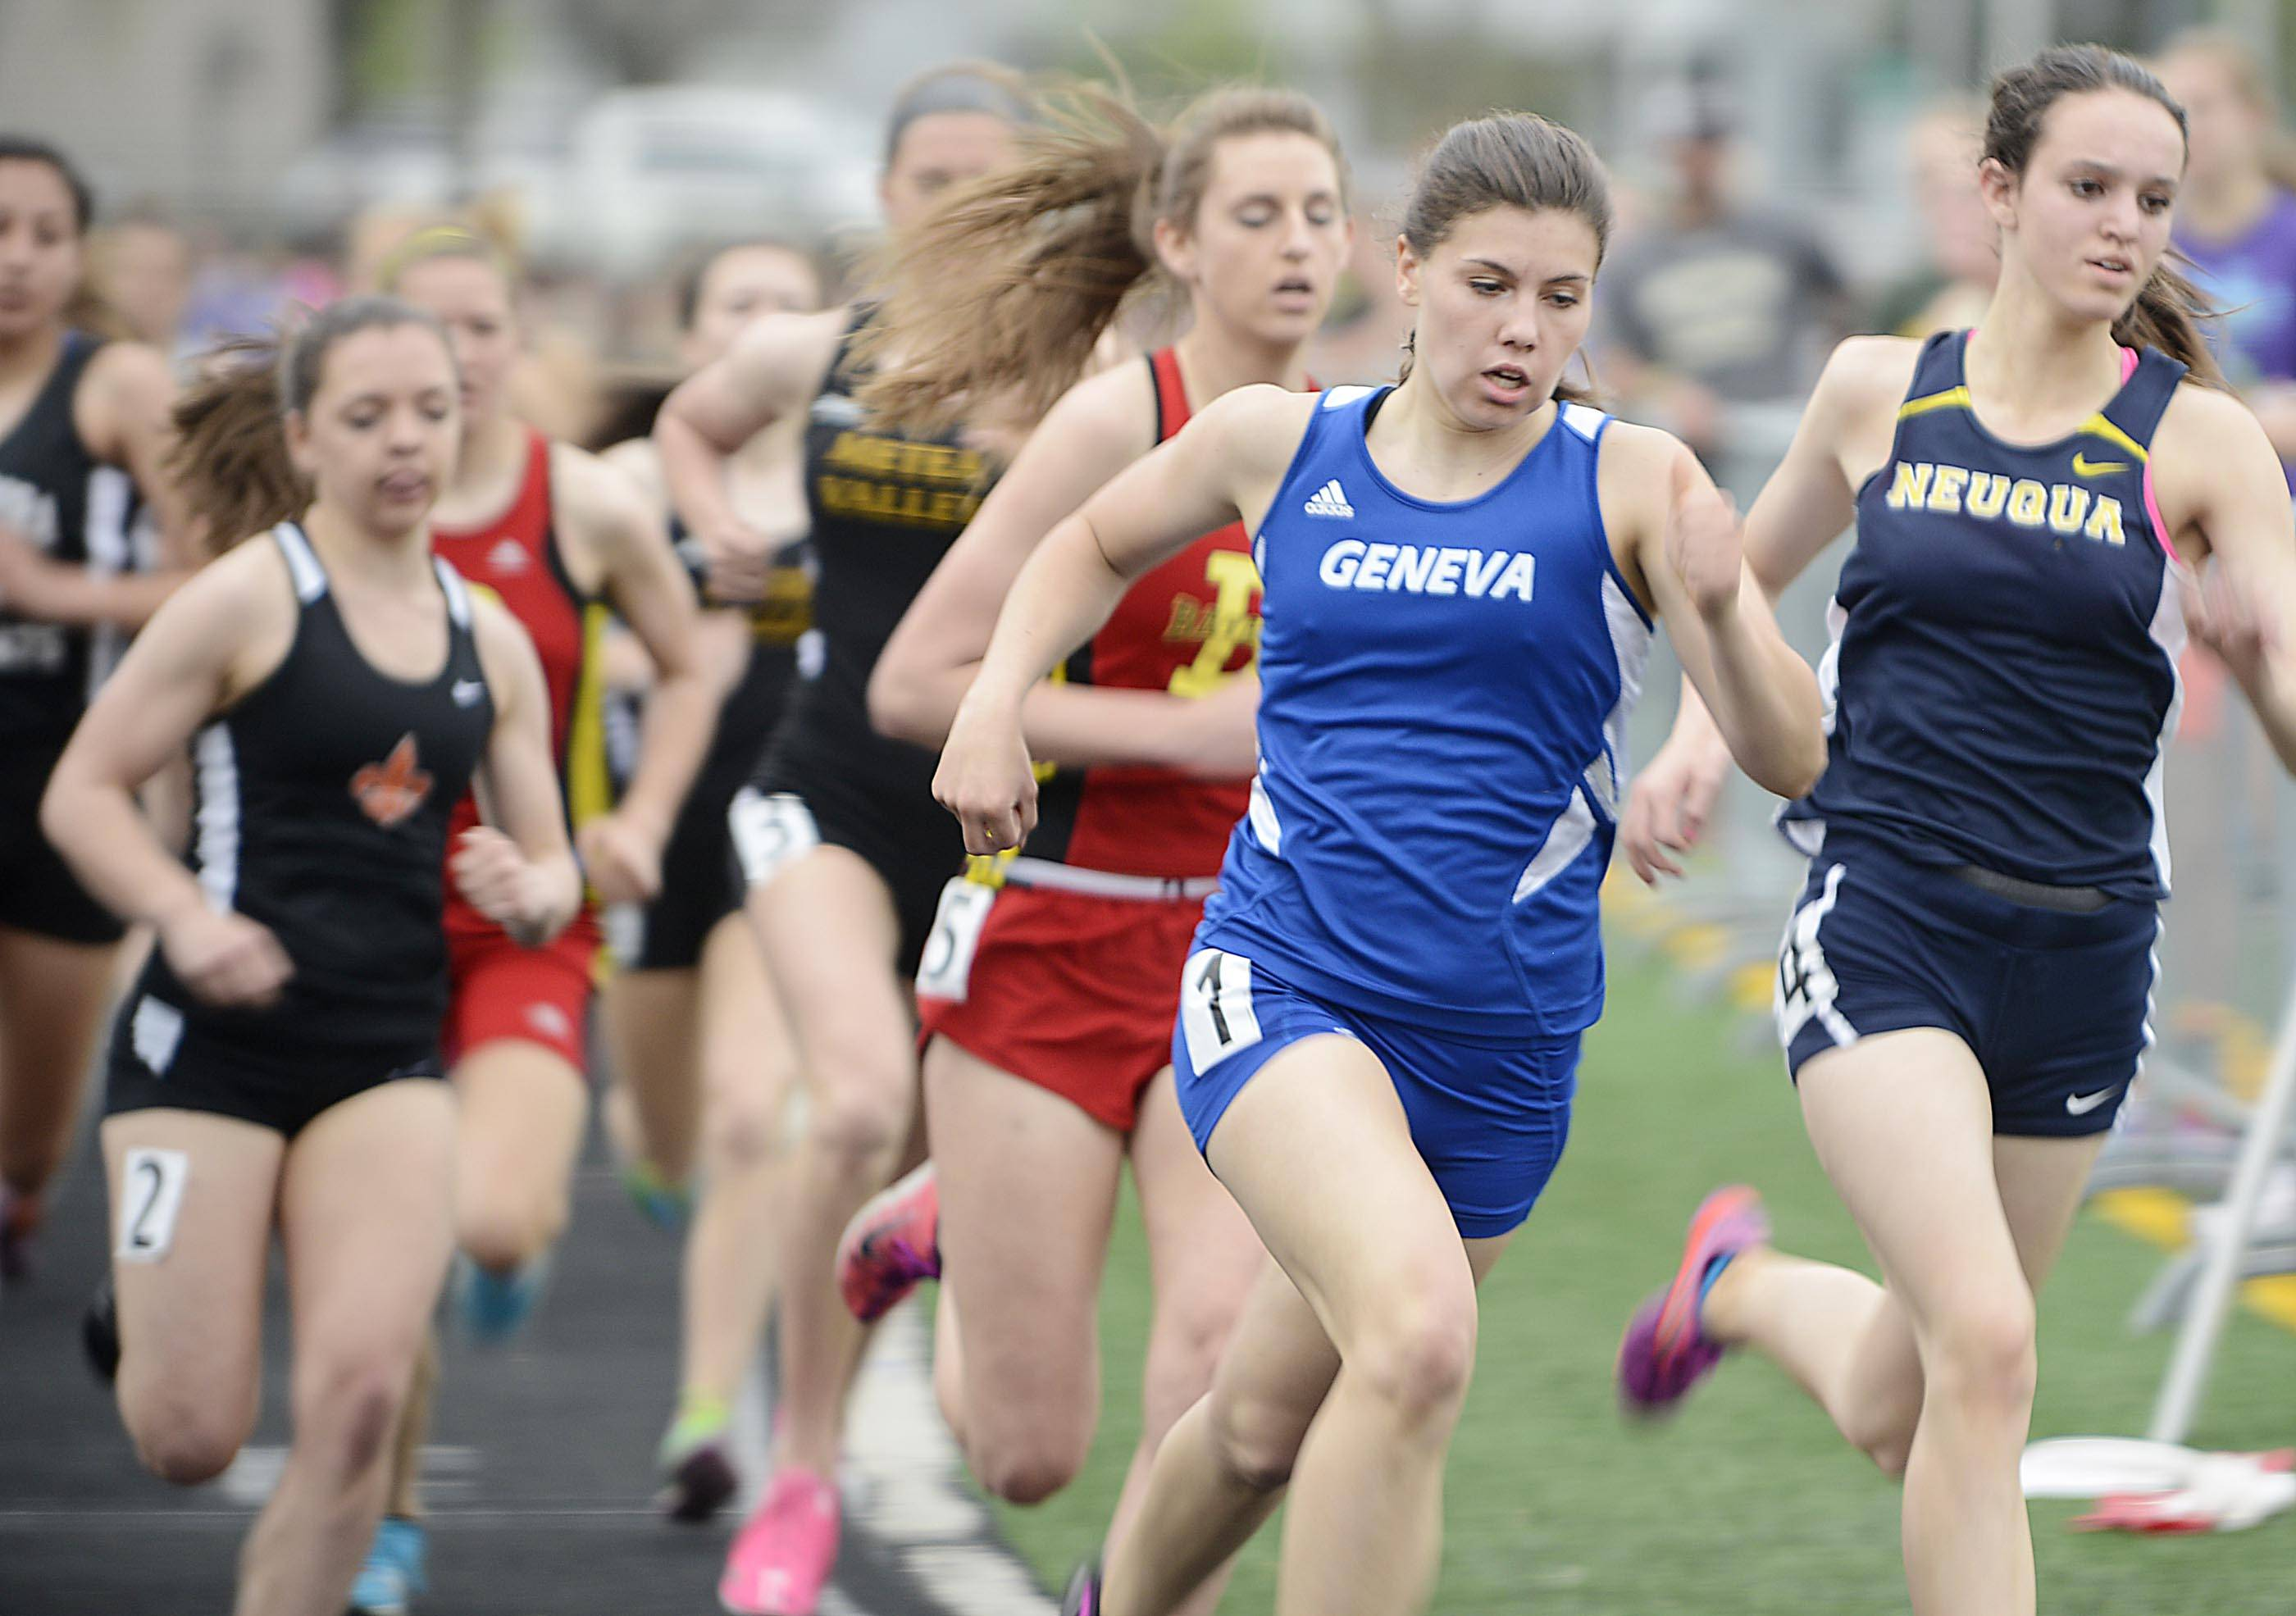 John Starks/jstarks@dailyherald.com ¬ Geneva's Kathryn Adelman takes an outside lane around turn one in on her way to a victory in the 800 meter run Thursday at the Upstate Eight Conference girls track meet at Geneva High School.